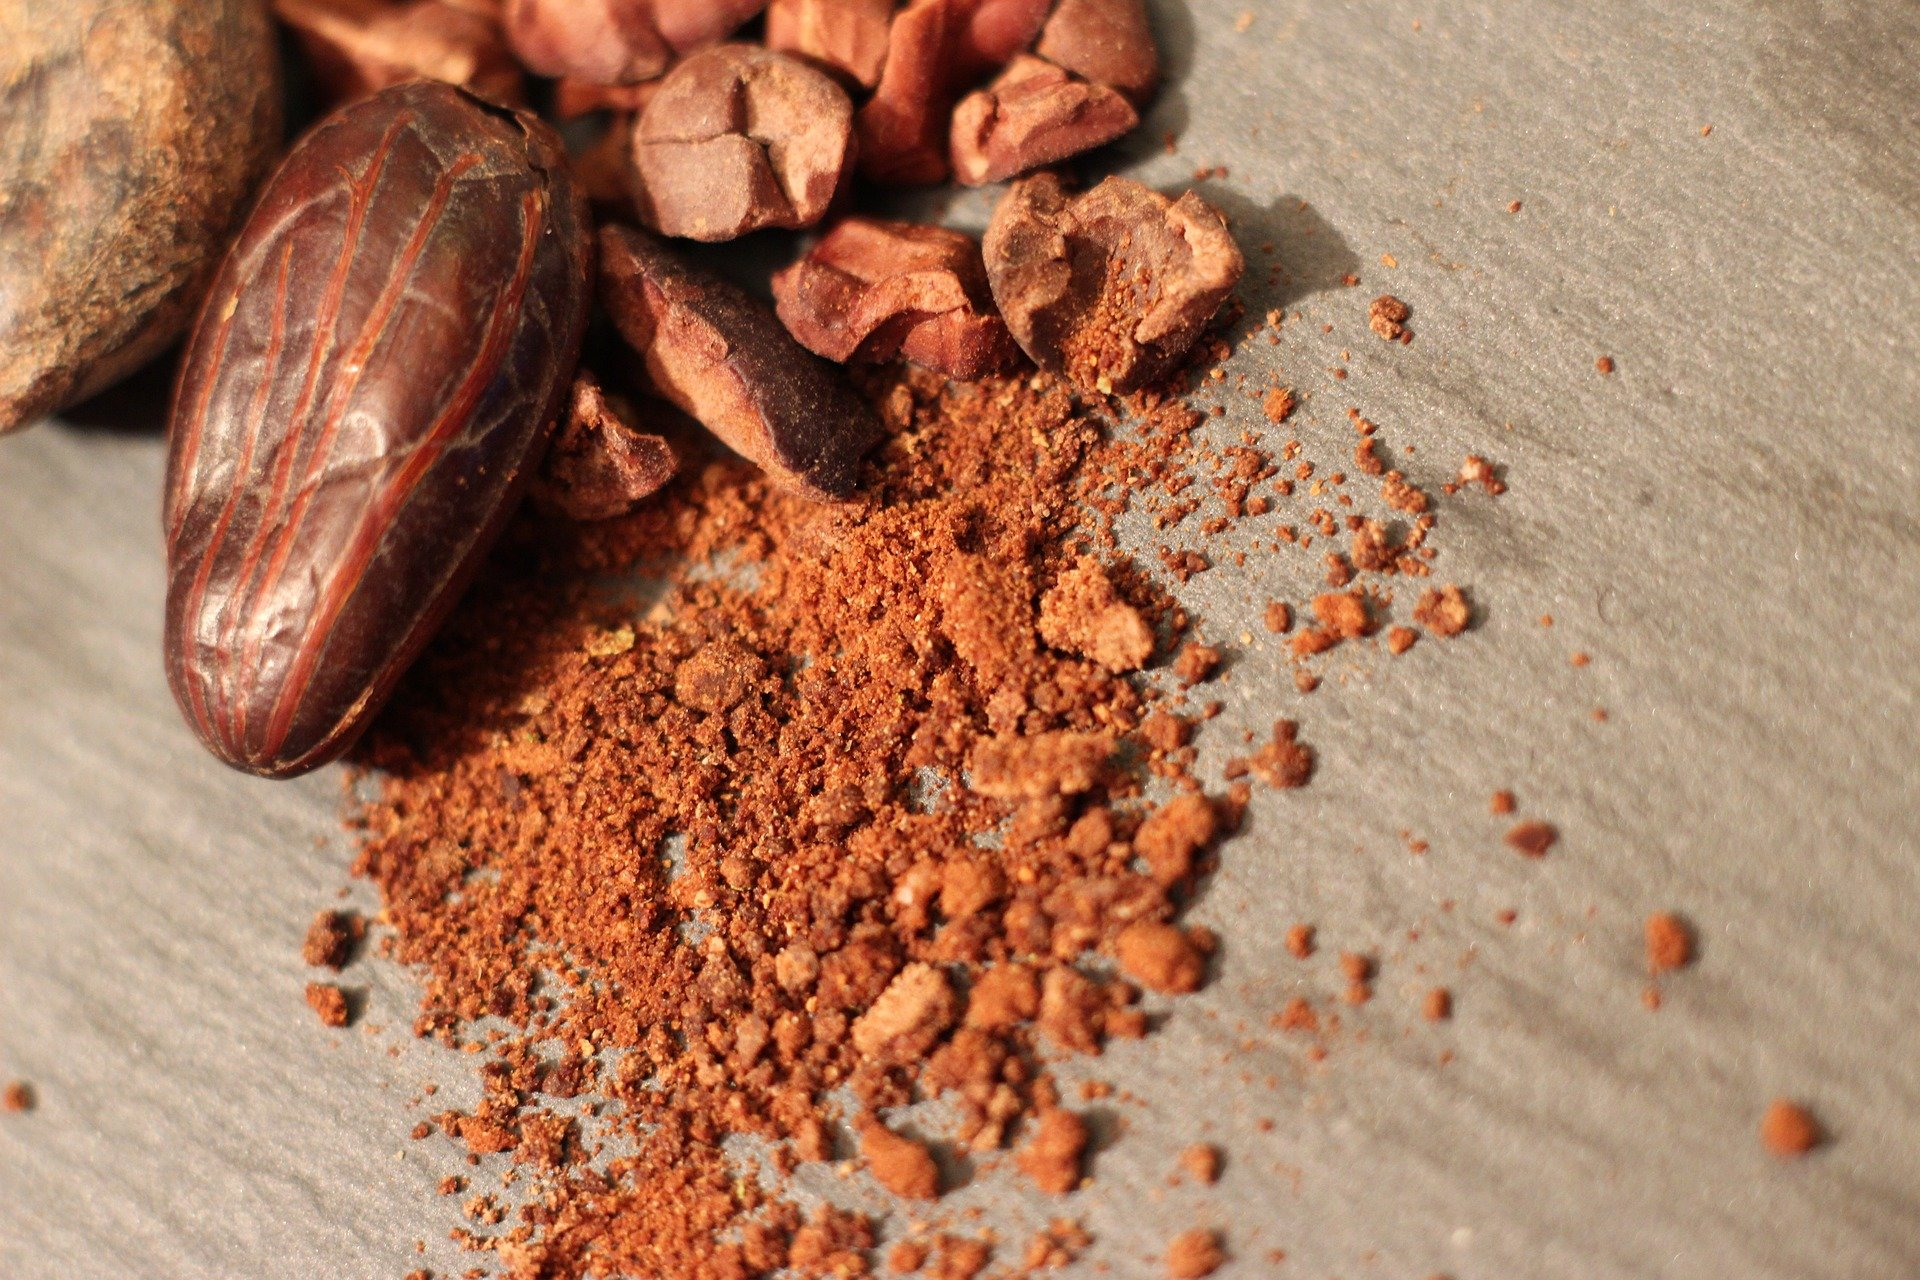 Cacao analysis dates the dawn of domesticated chocolate trees to 3,600 years ago